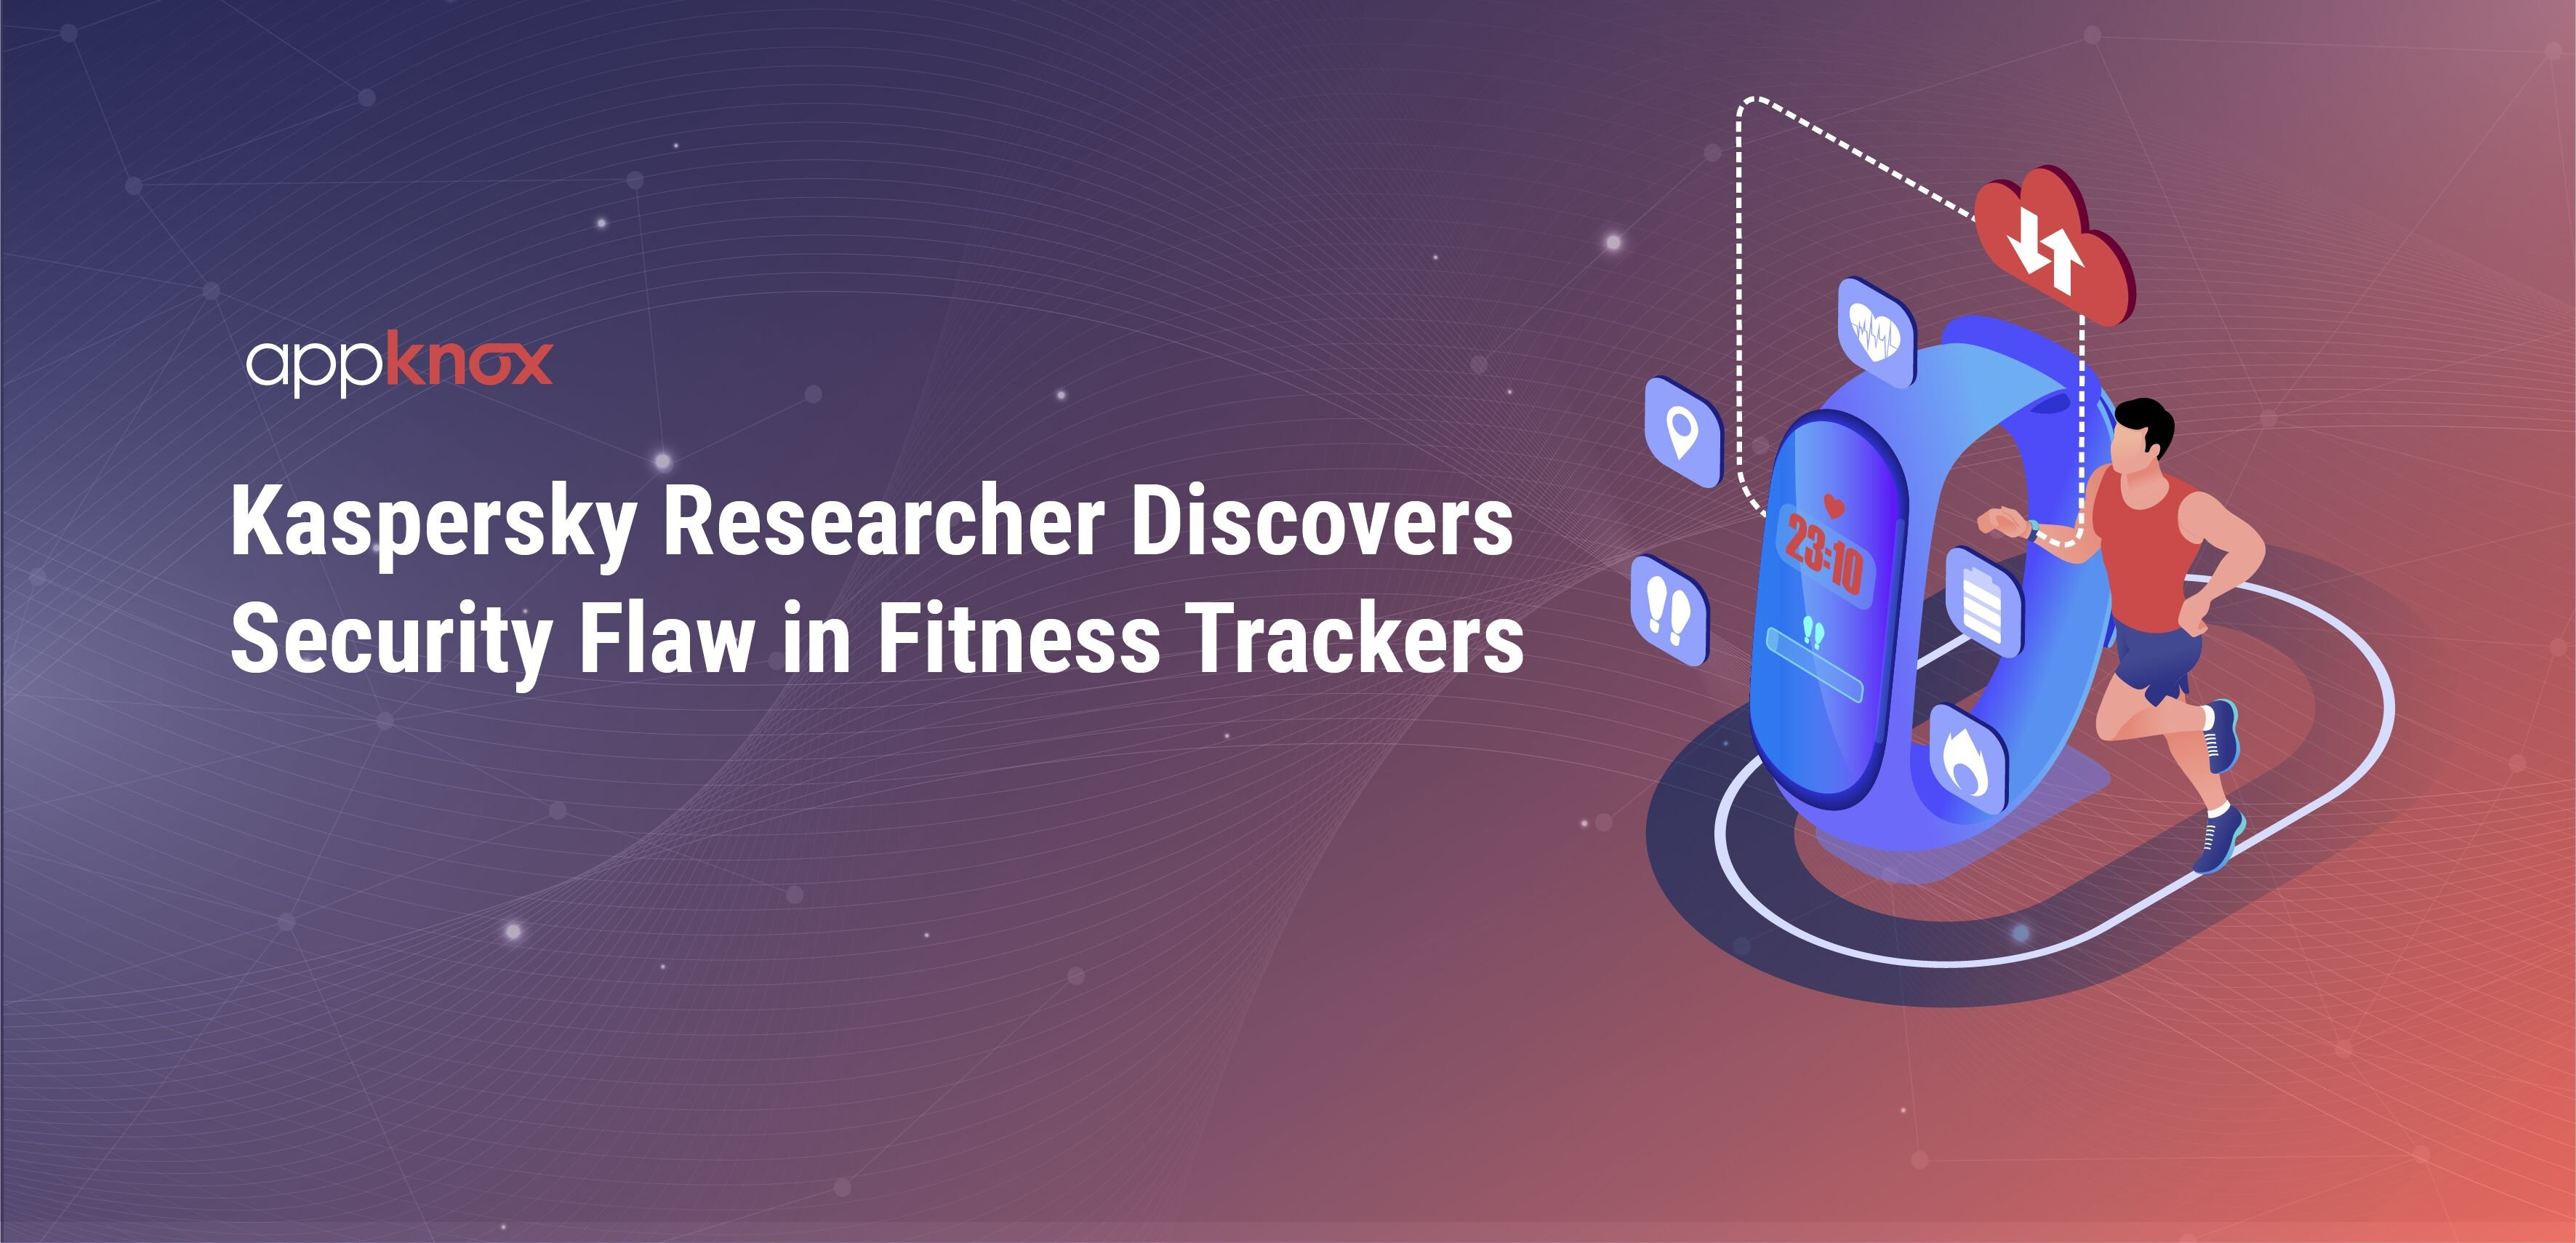 Kaspersky Researcher Discovers Security Flaw in Fitness Trackers